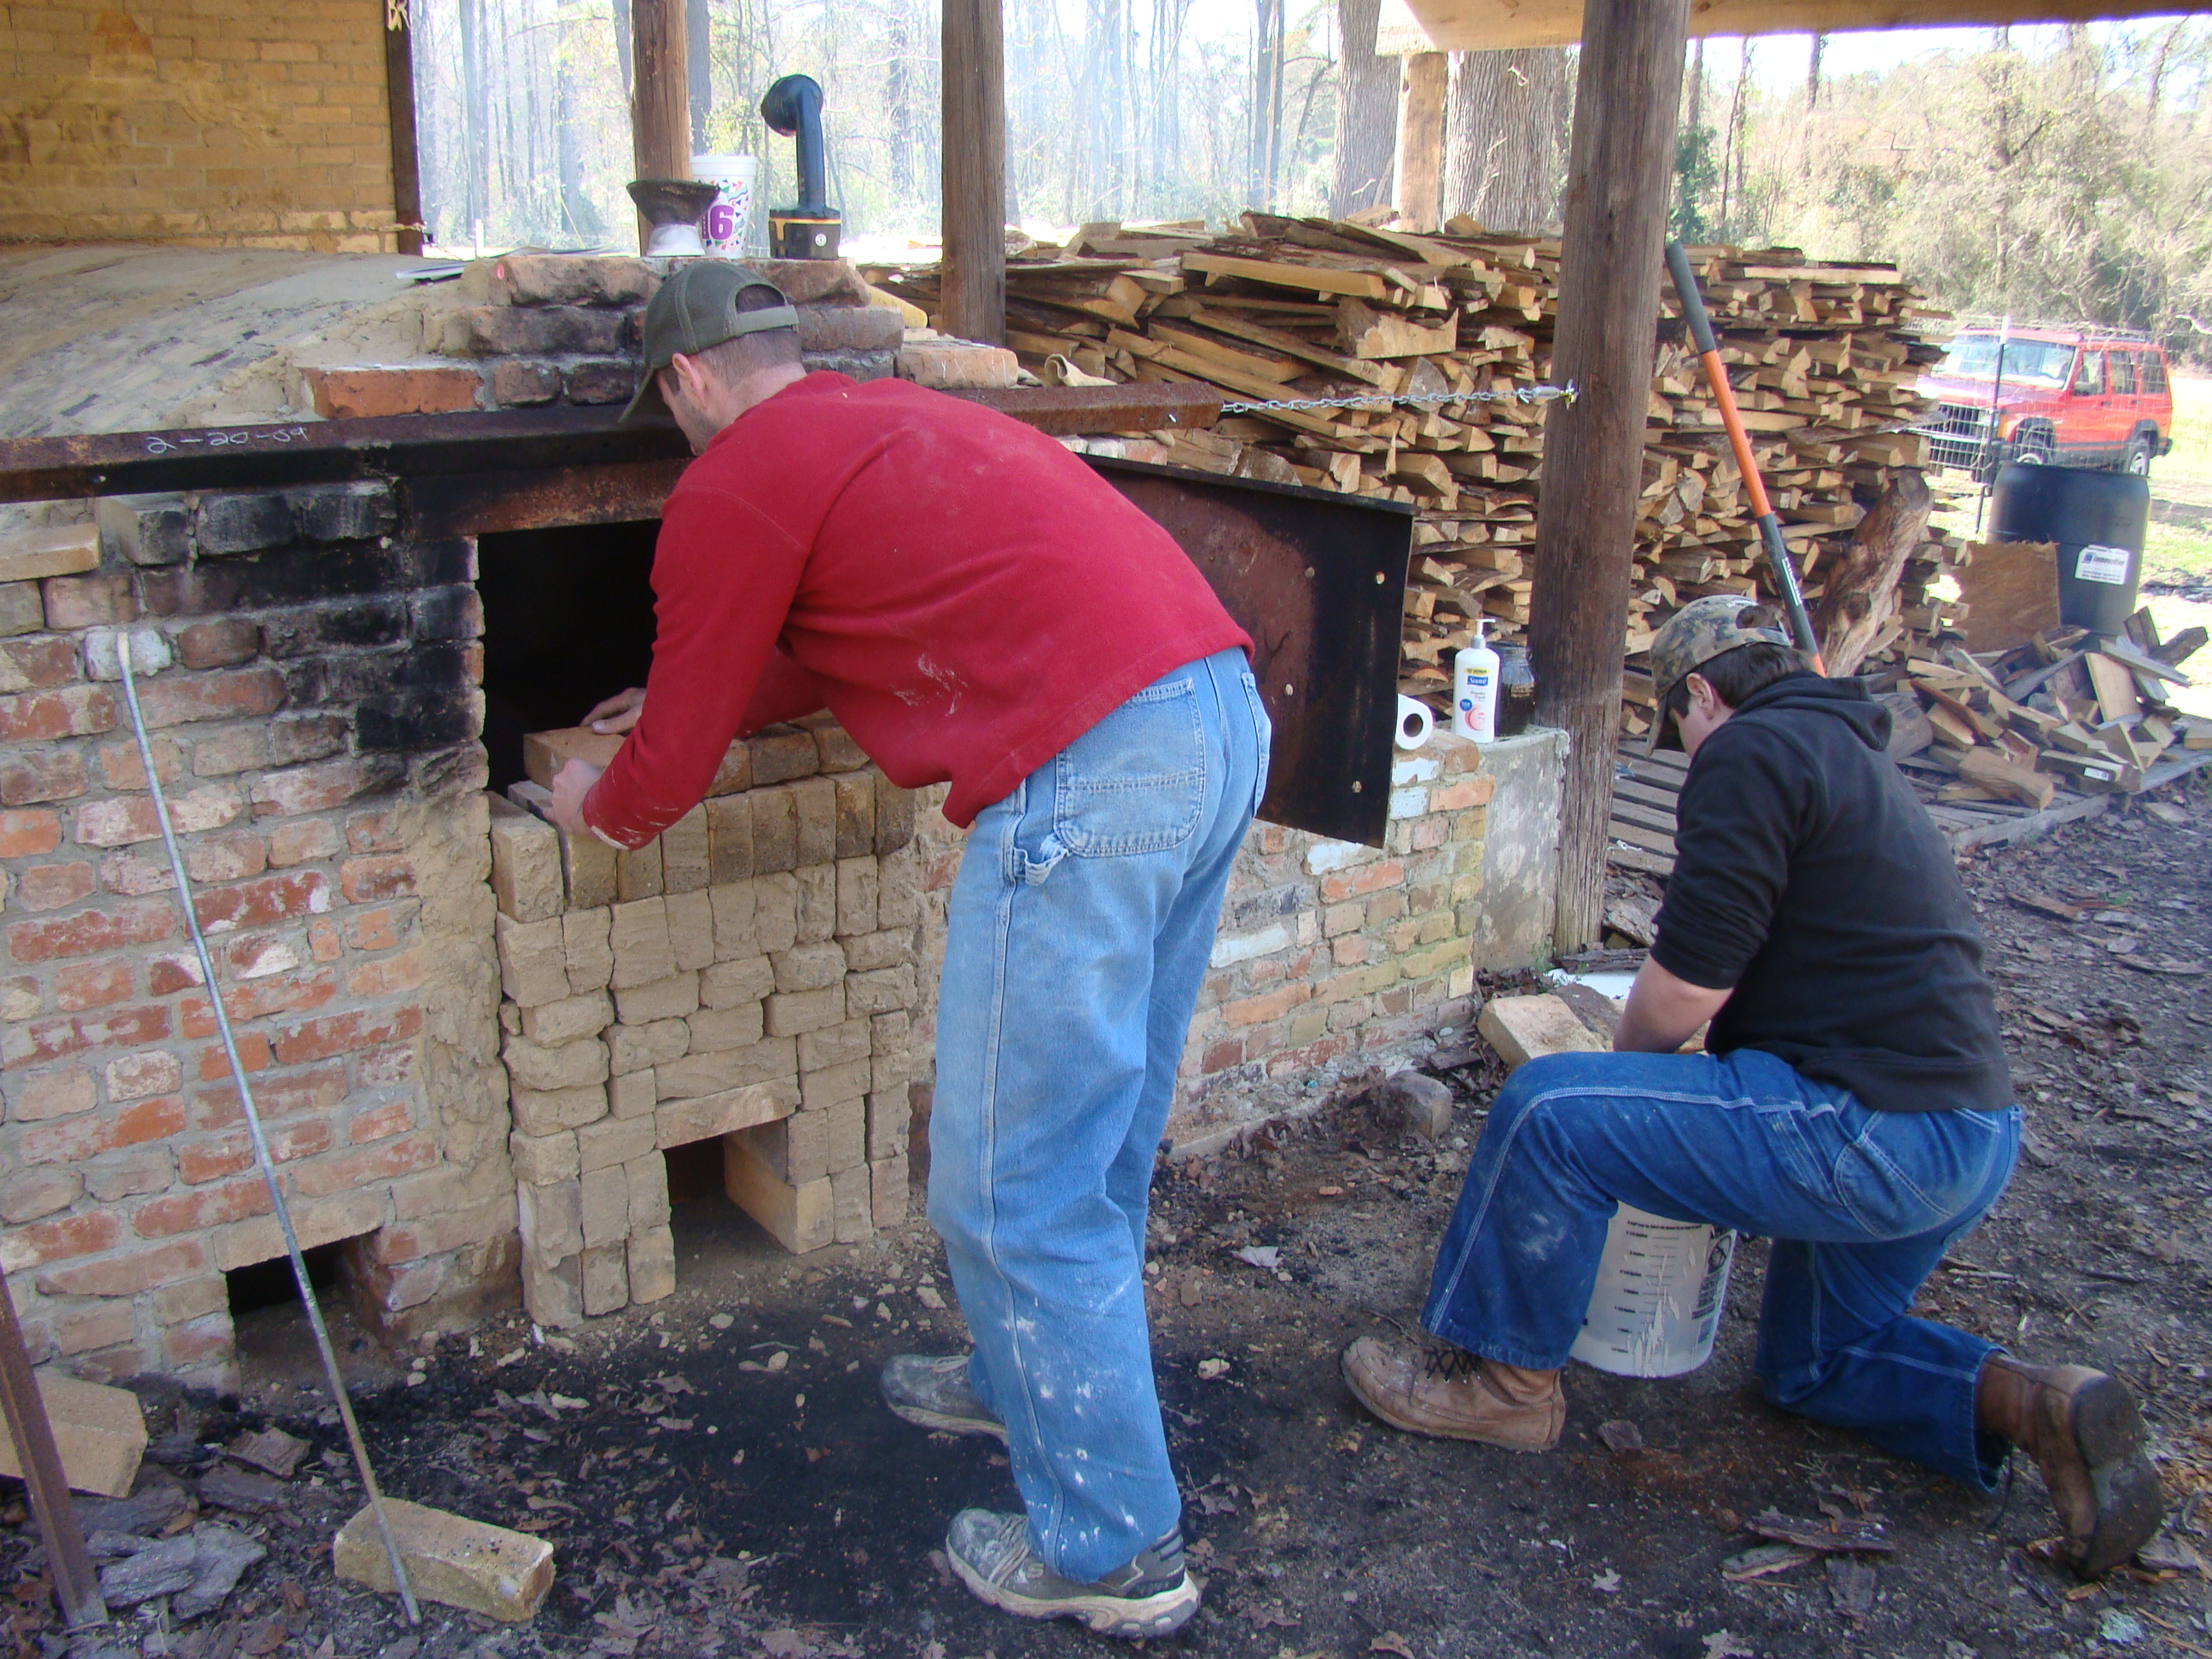 Workers at the Knoxville Bottom Kiln, a reproduction wood-fired brick kiln, demonstrate Crawford County's rich pottery-making traditions.